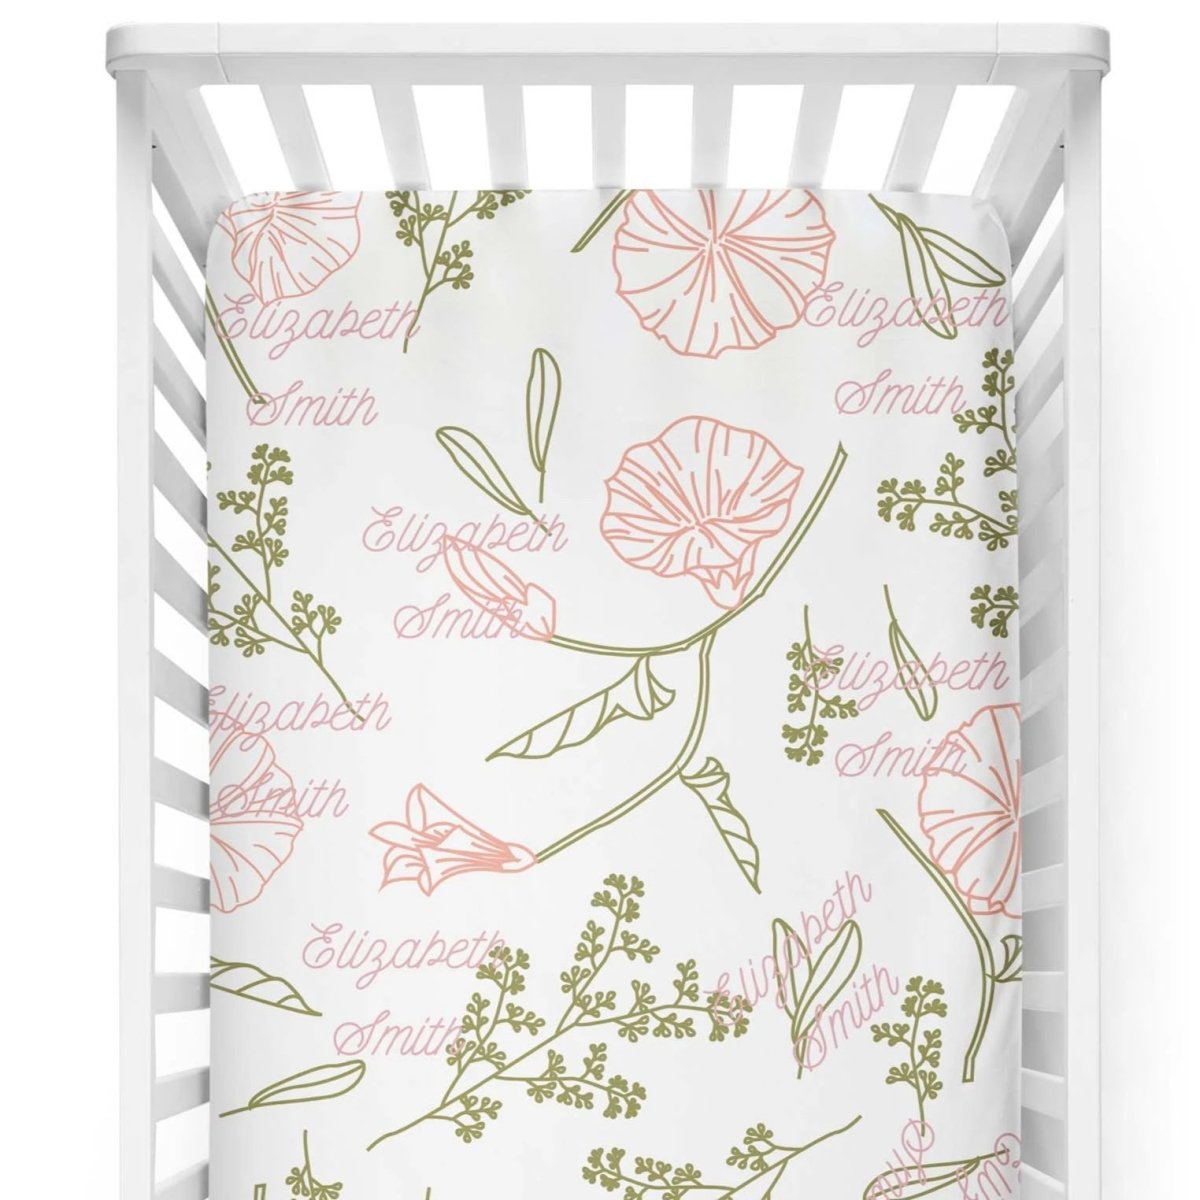 crib Pastel Floral - Name - Personalized Fitted Crib Sheet - ZERO TO THREE CLUB crib